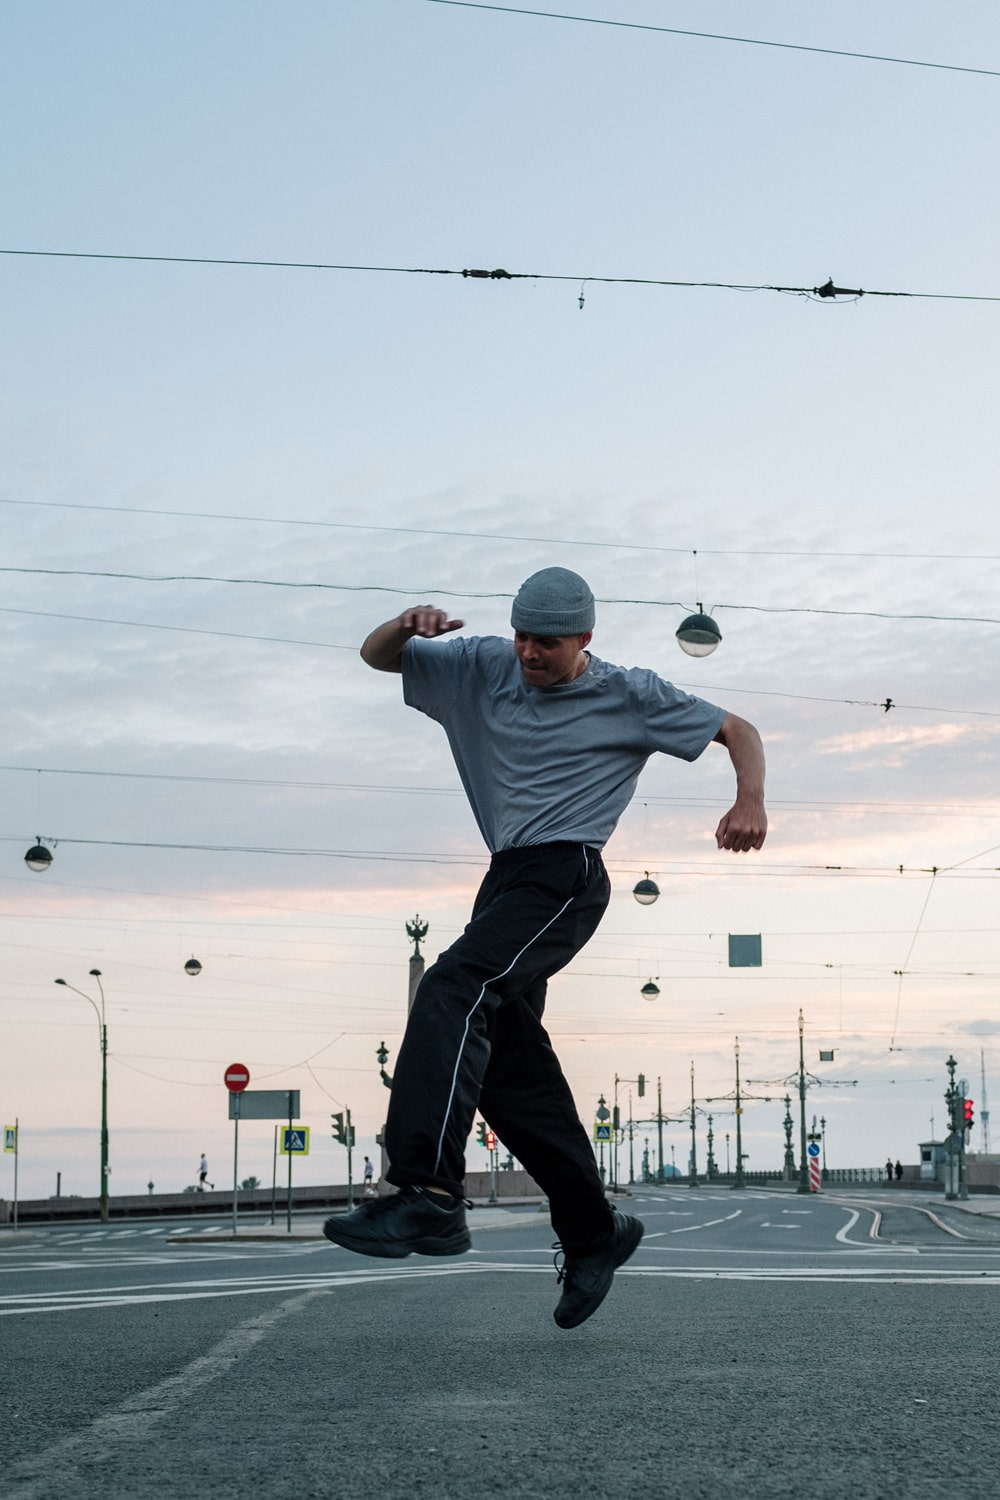 man jumping on the street with a sunset in the background